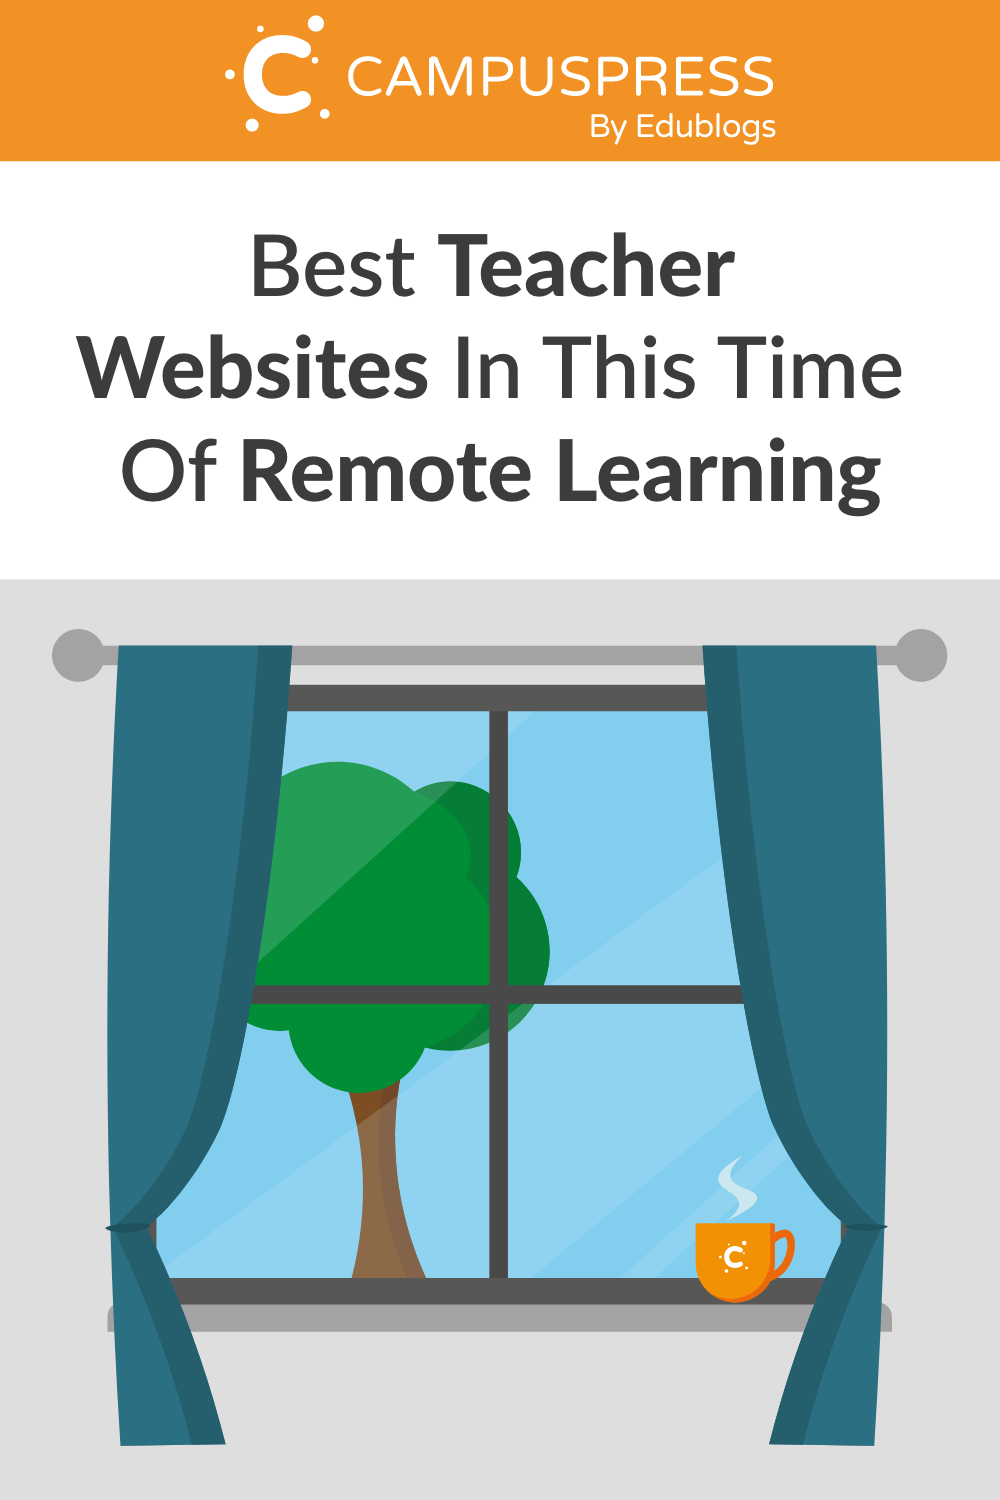 Best Teacher Websites In This Time Of Remote Learning In 2020 Teacher Websites Best Teacher Teacher